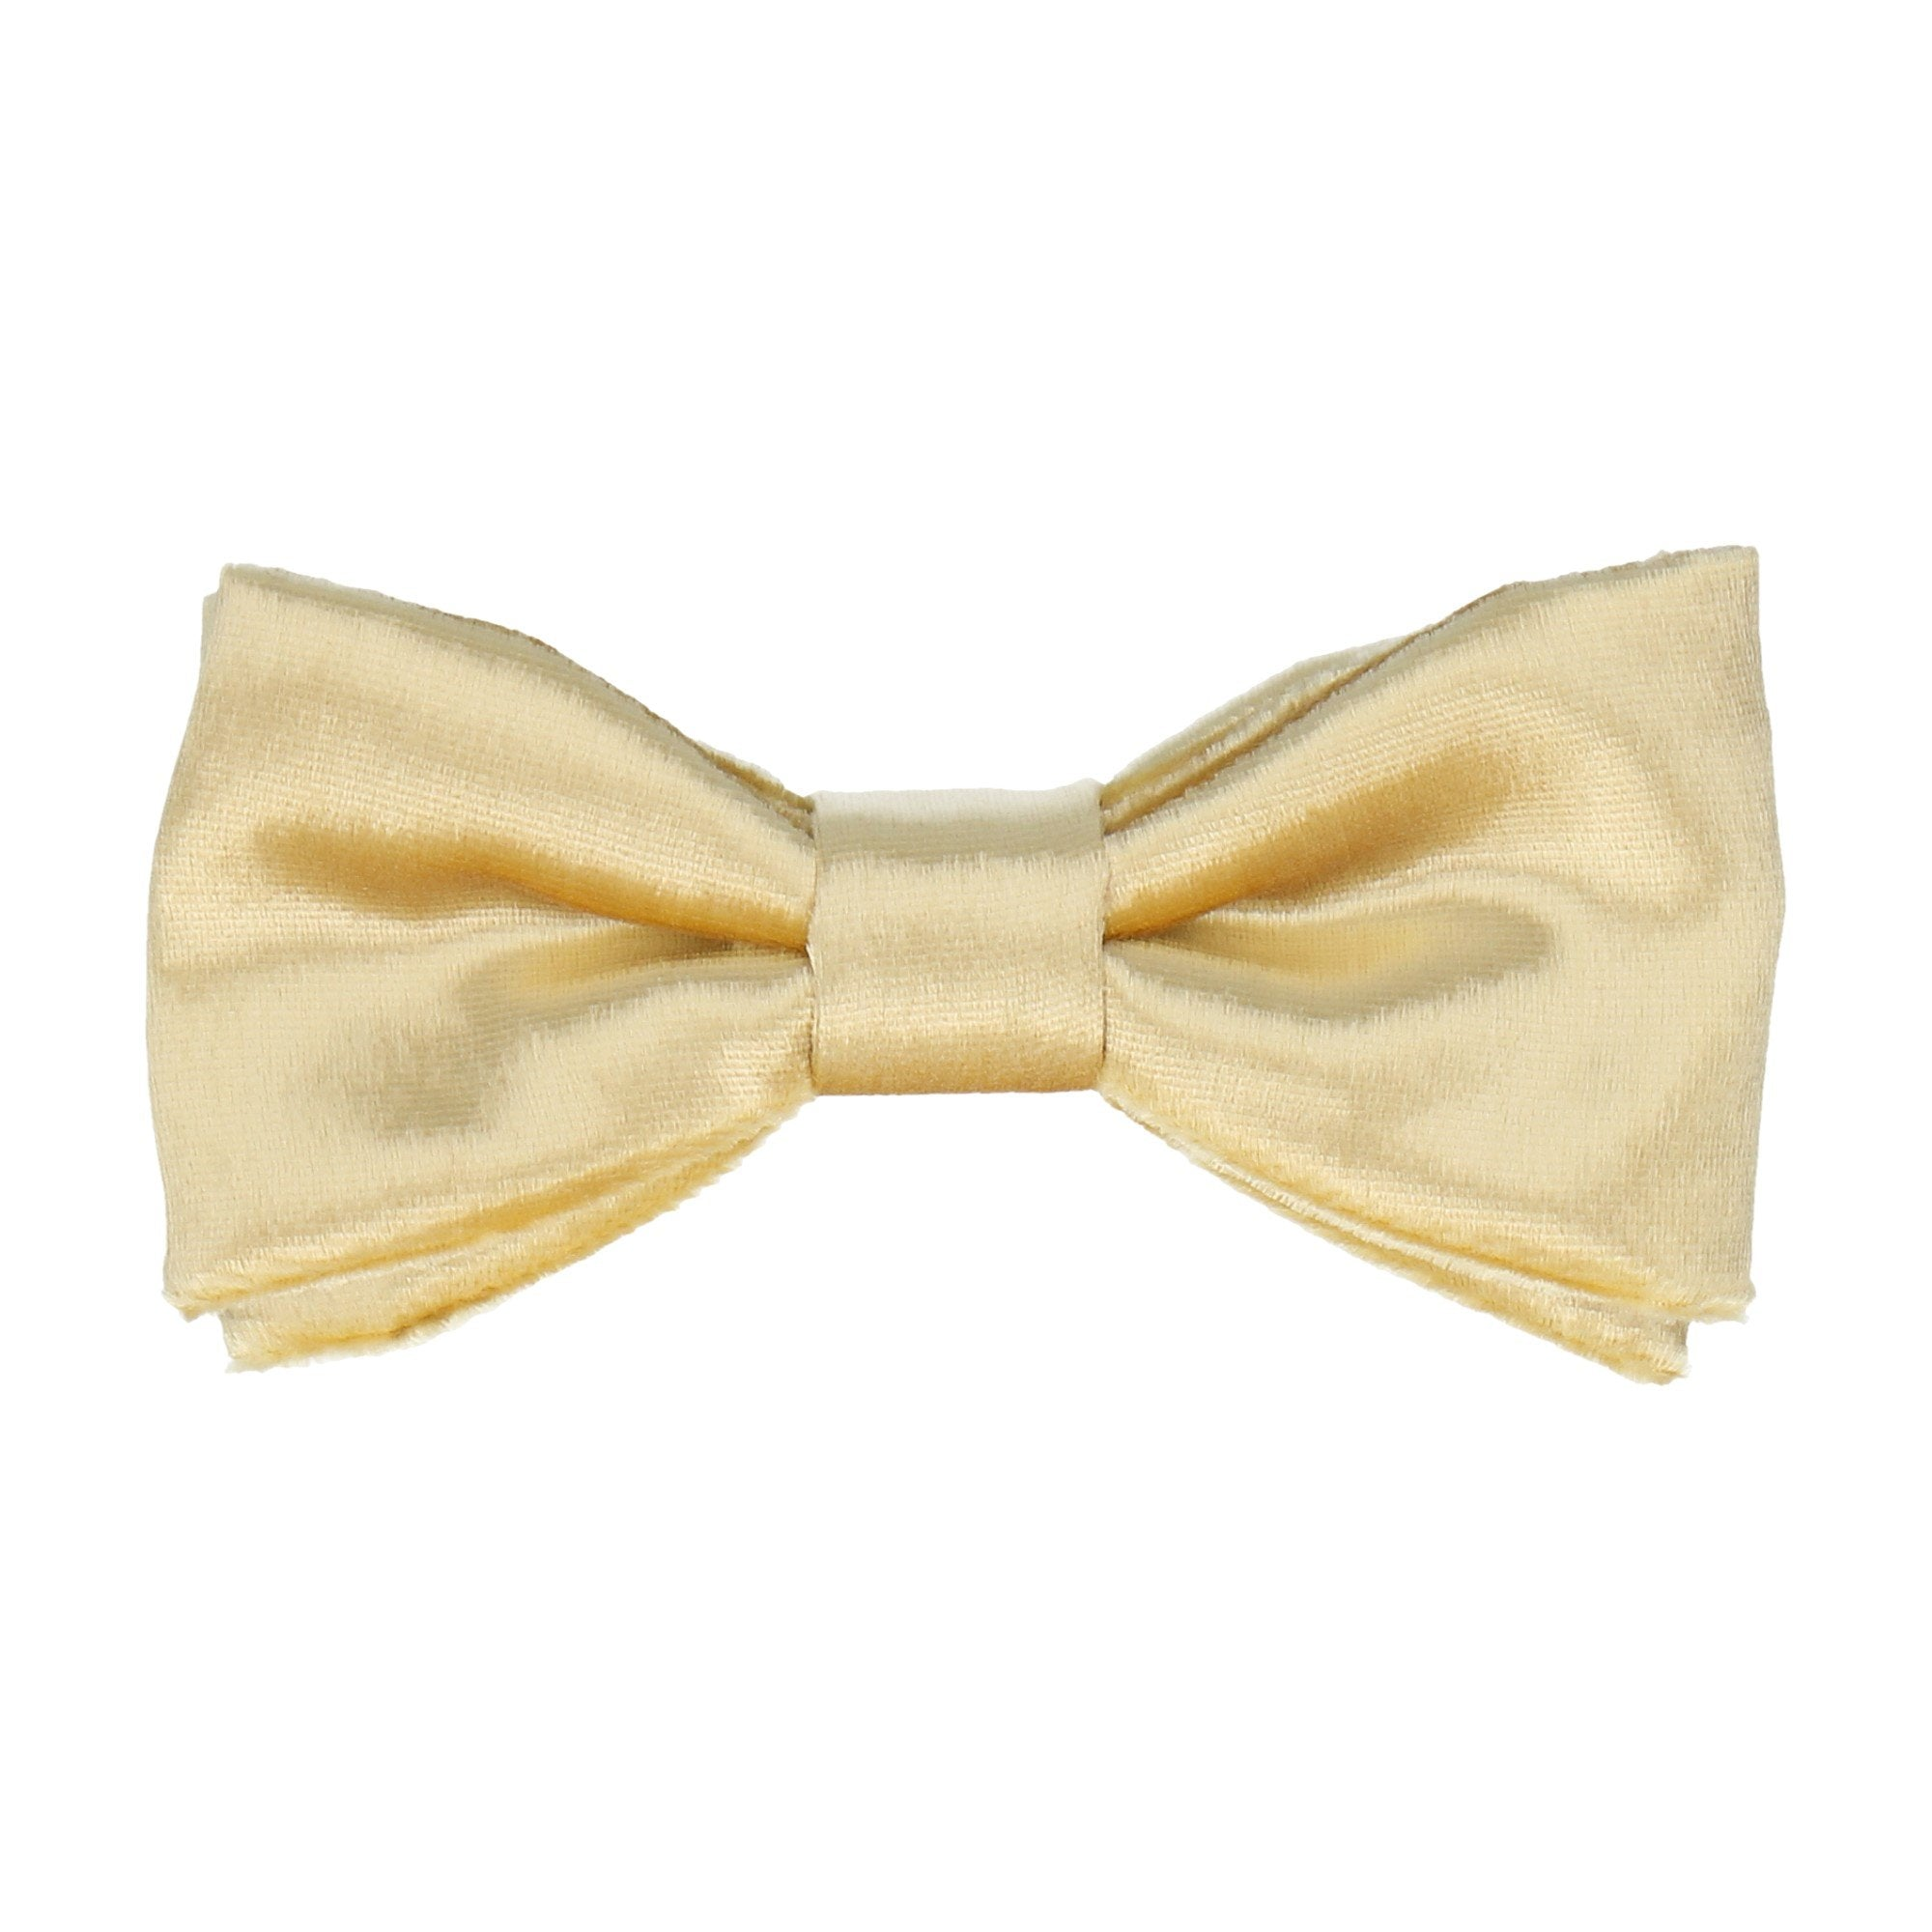 Silk Velvet in Gold Bow Tie